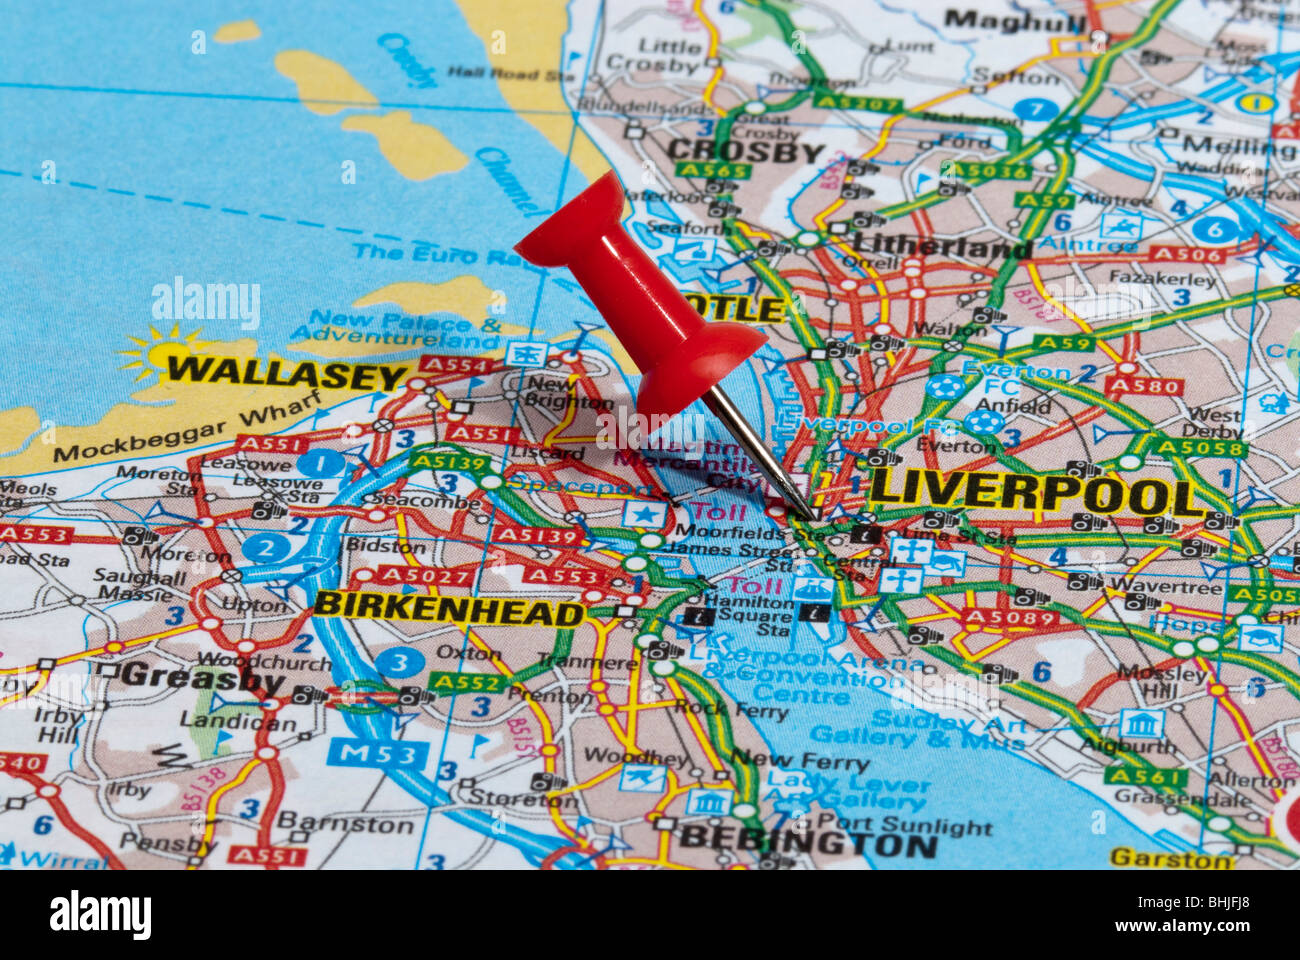 City Map With Pin Pointers Stock Vector - Image: 39982541